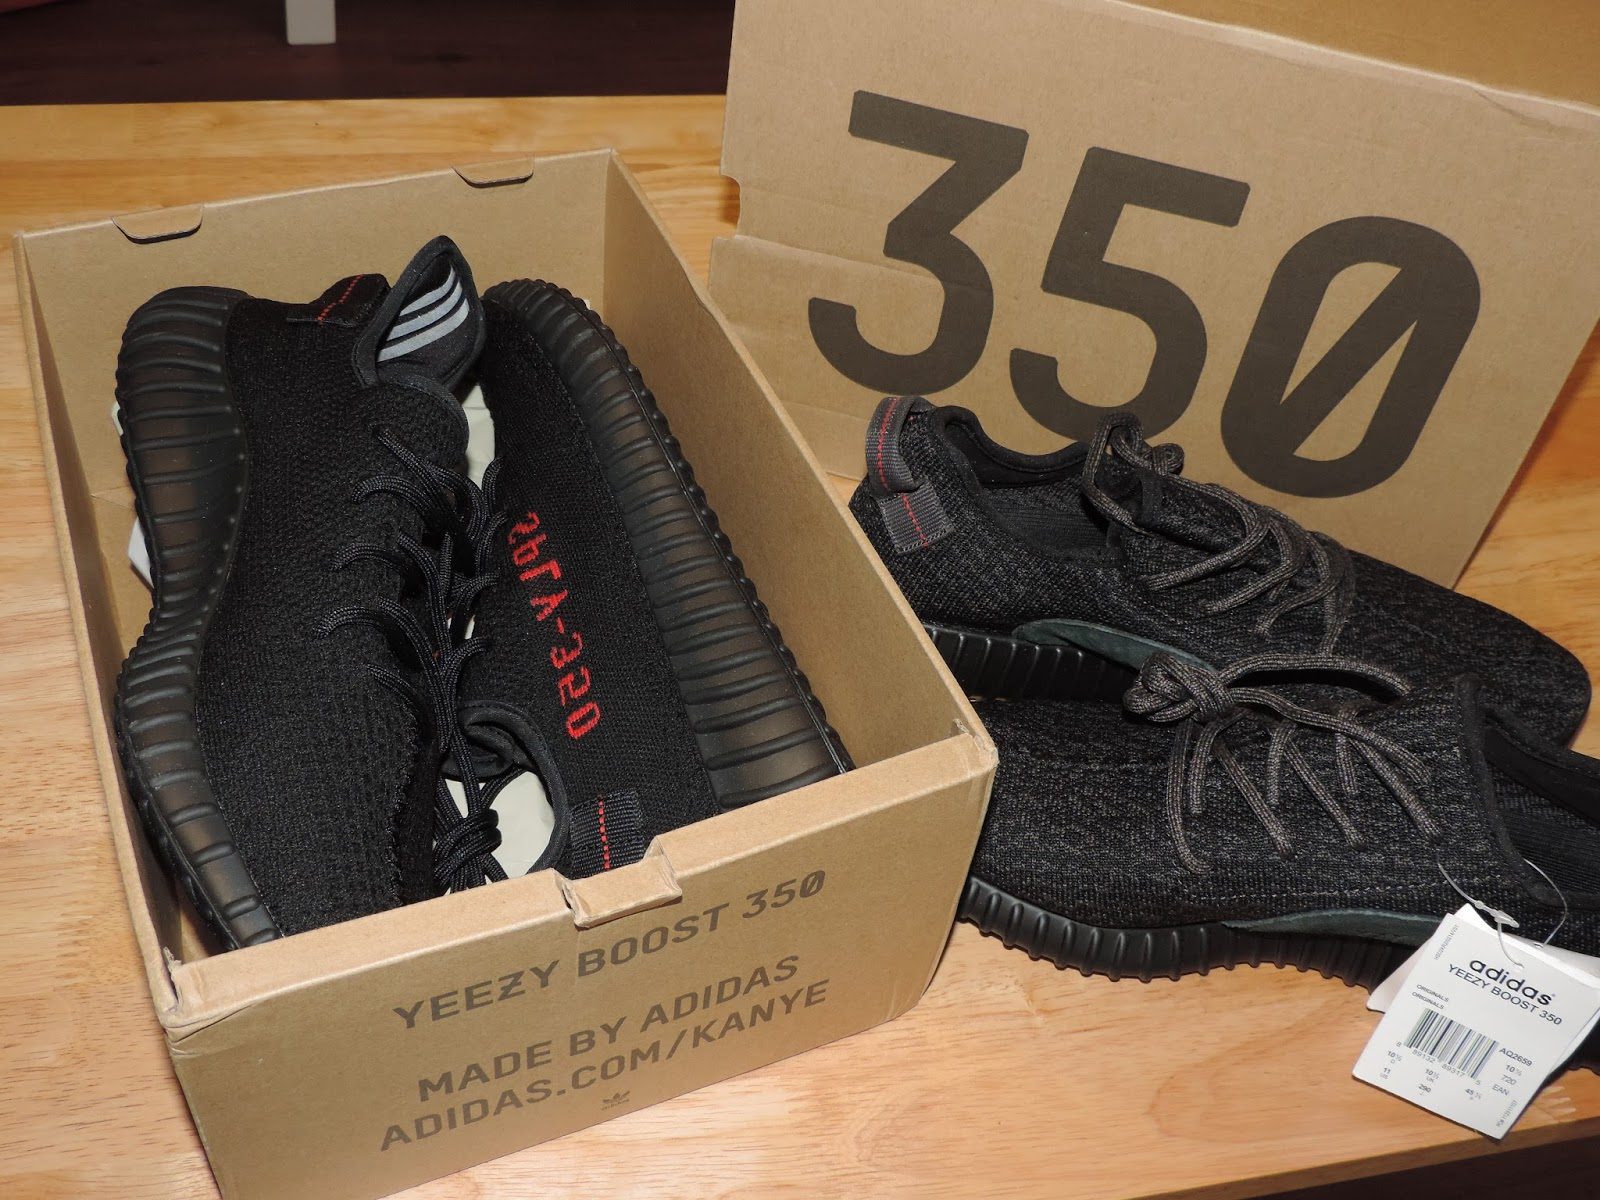 Yeezy Boost 350 Shoes That are in Stock!